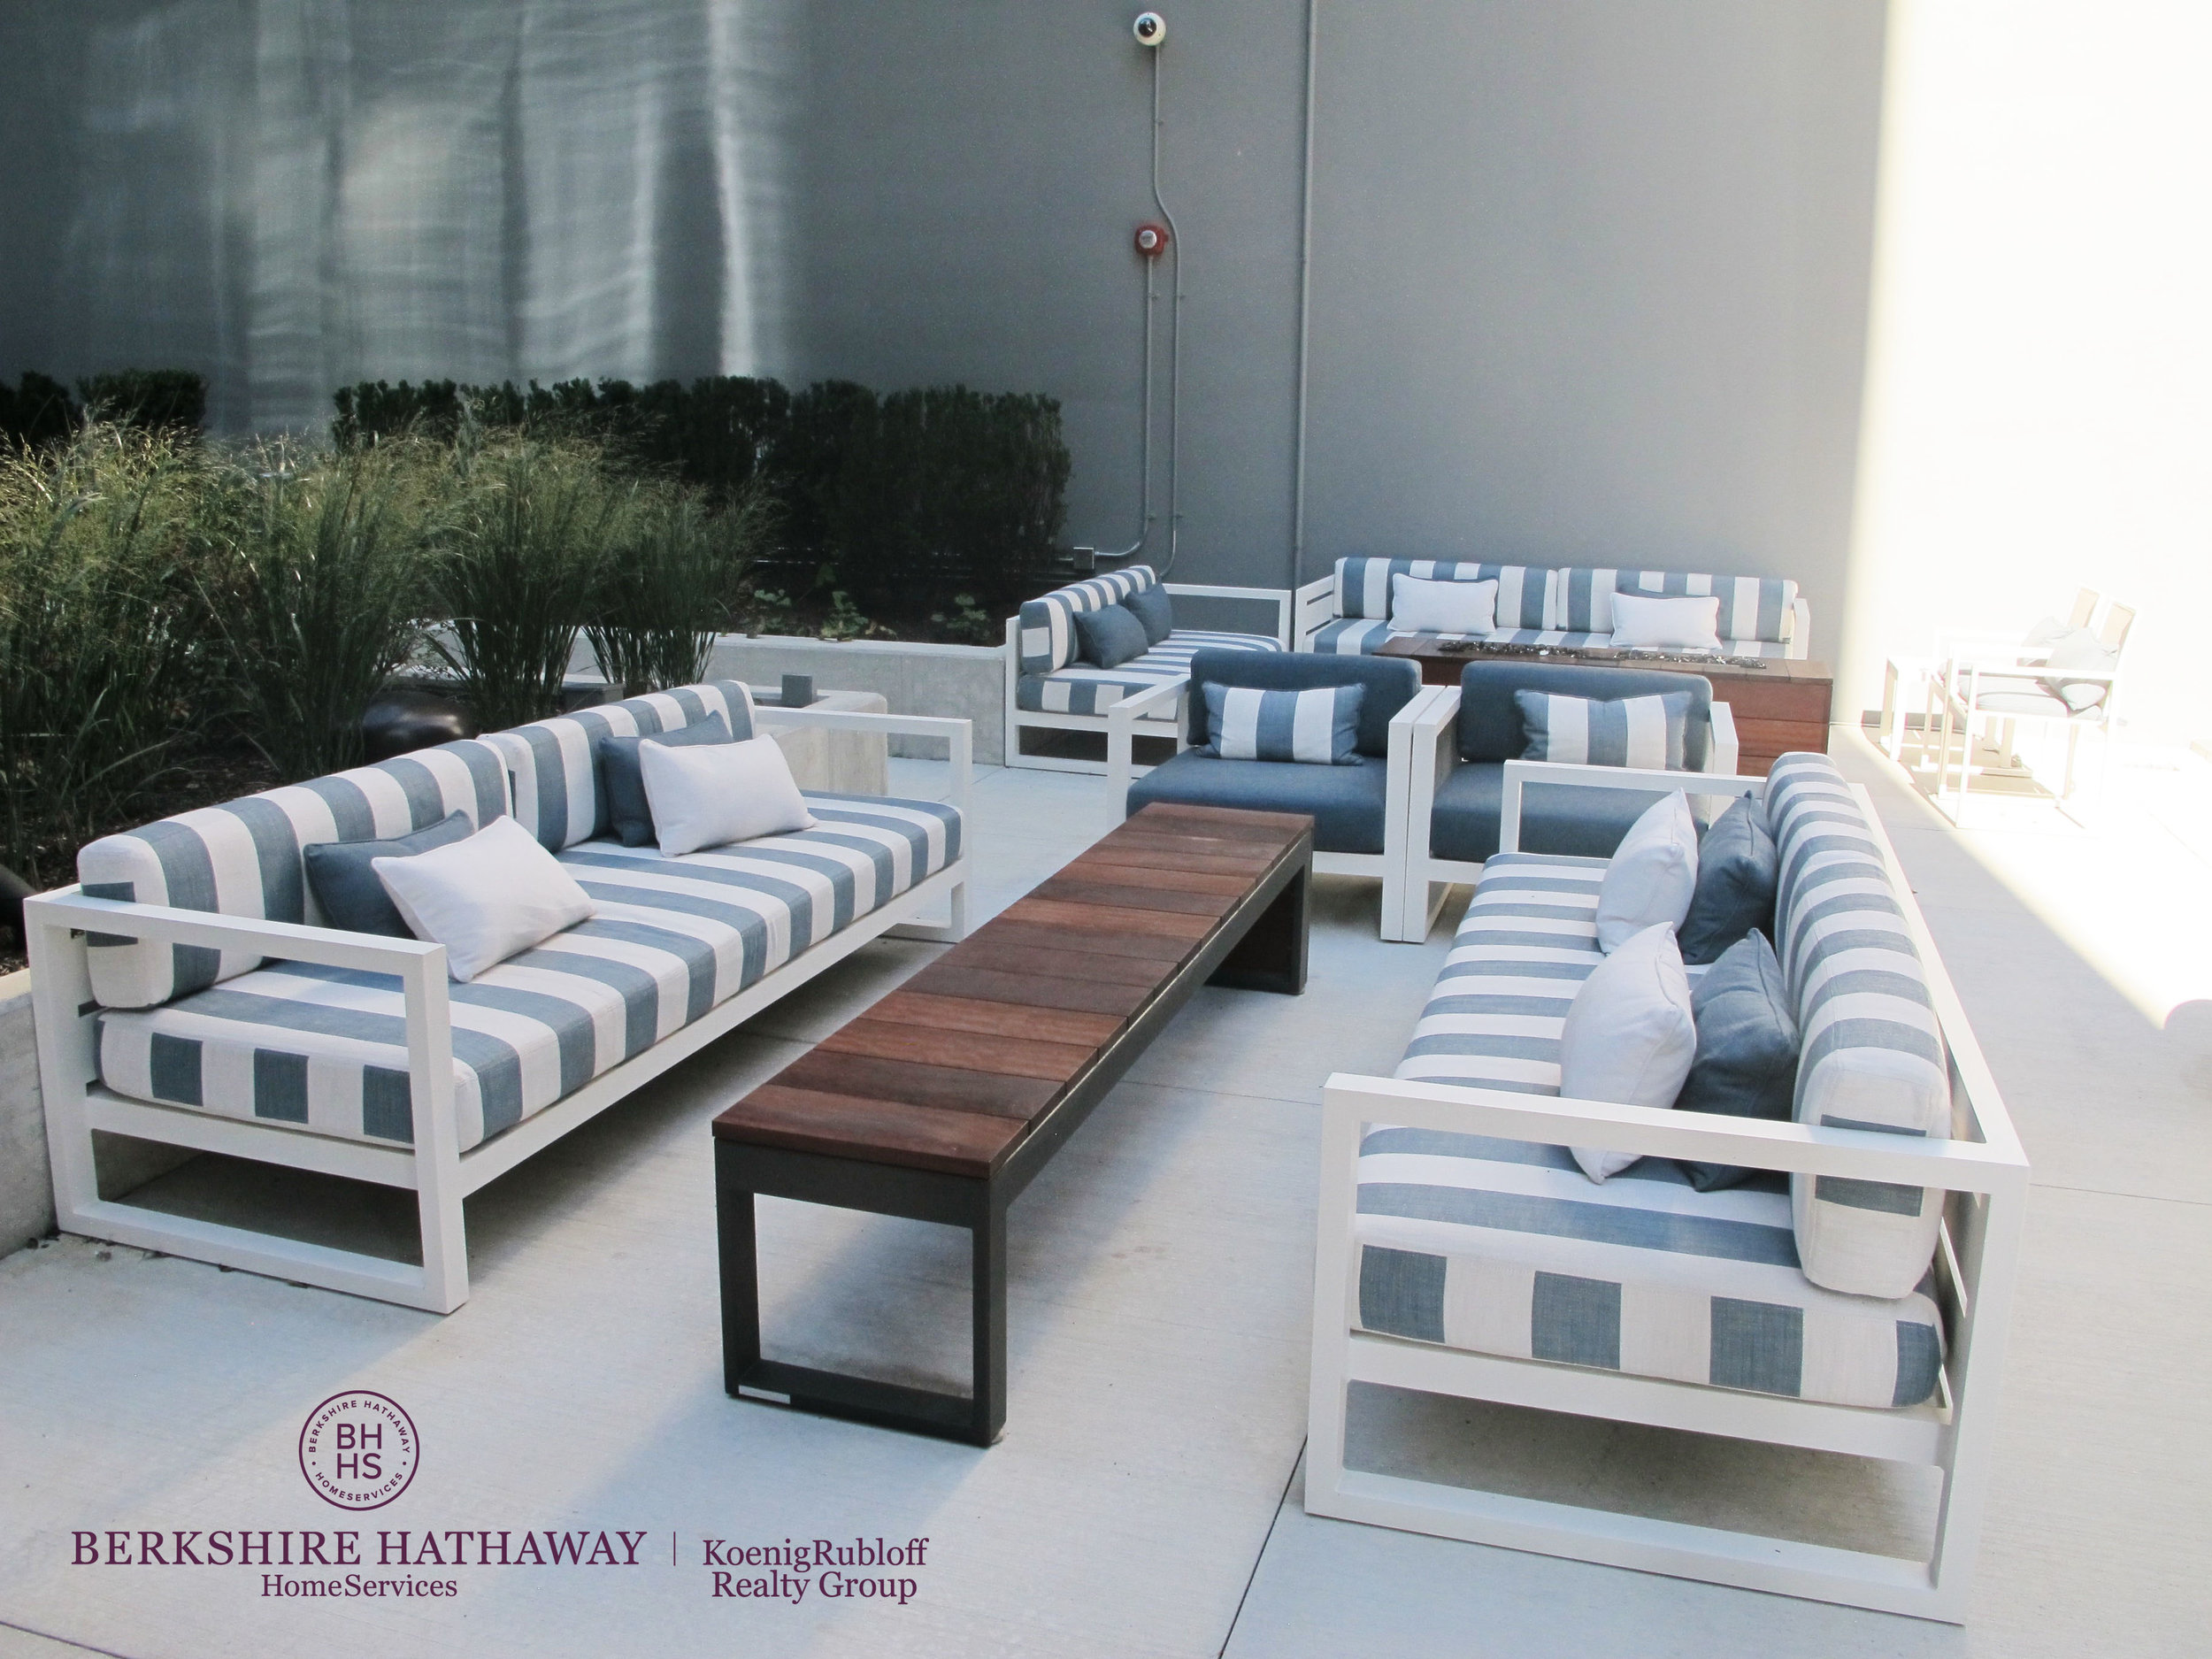 zOutdoor Seating 2.jpg